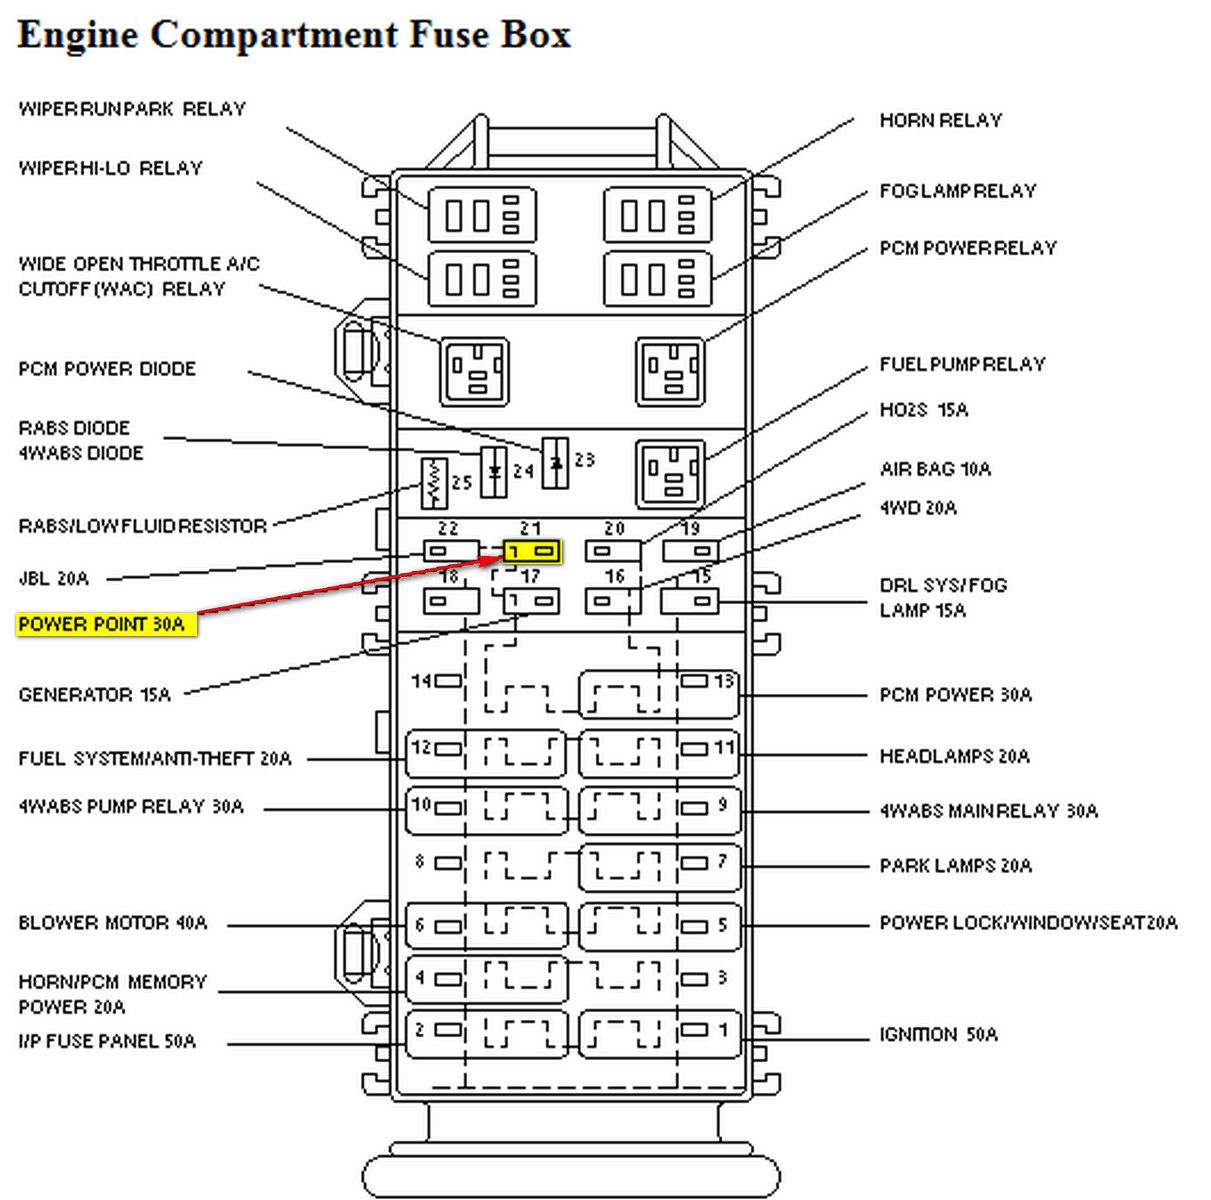 hight resolution of 97 f250 fuse panel diagram wiring diagram schematics 1997 explorer wont shift into 4wd 1997 explorer fuse panel diagram